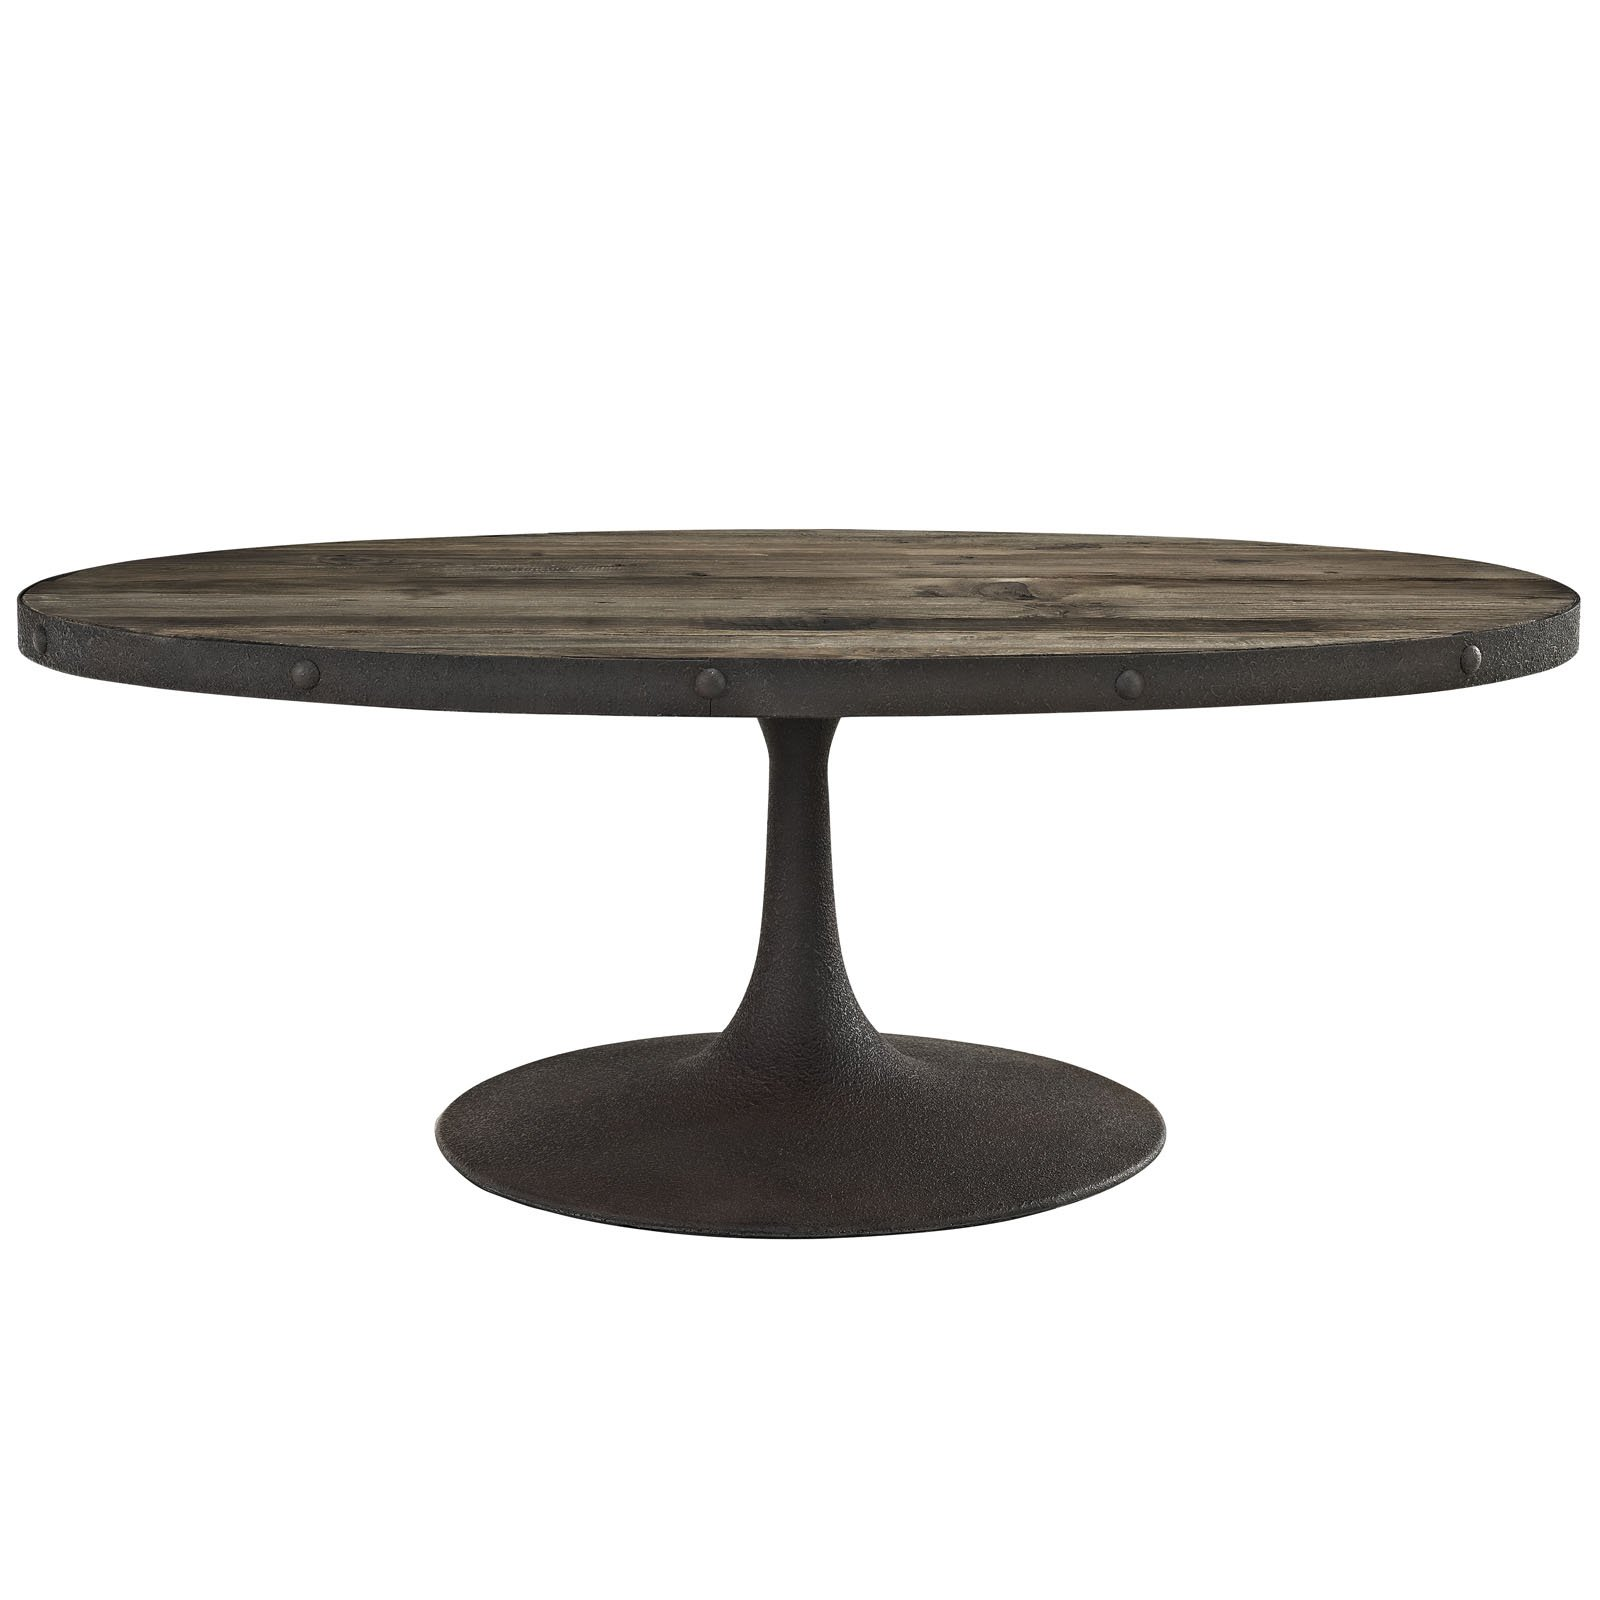 Modway Drive Wood Top Coffee Table in Brown